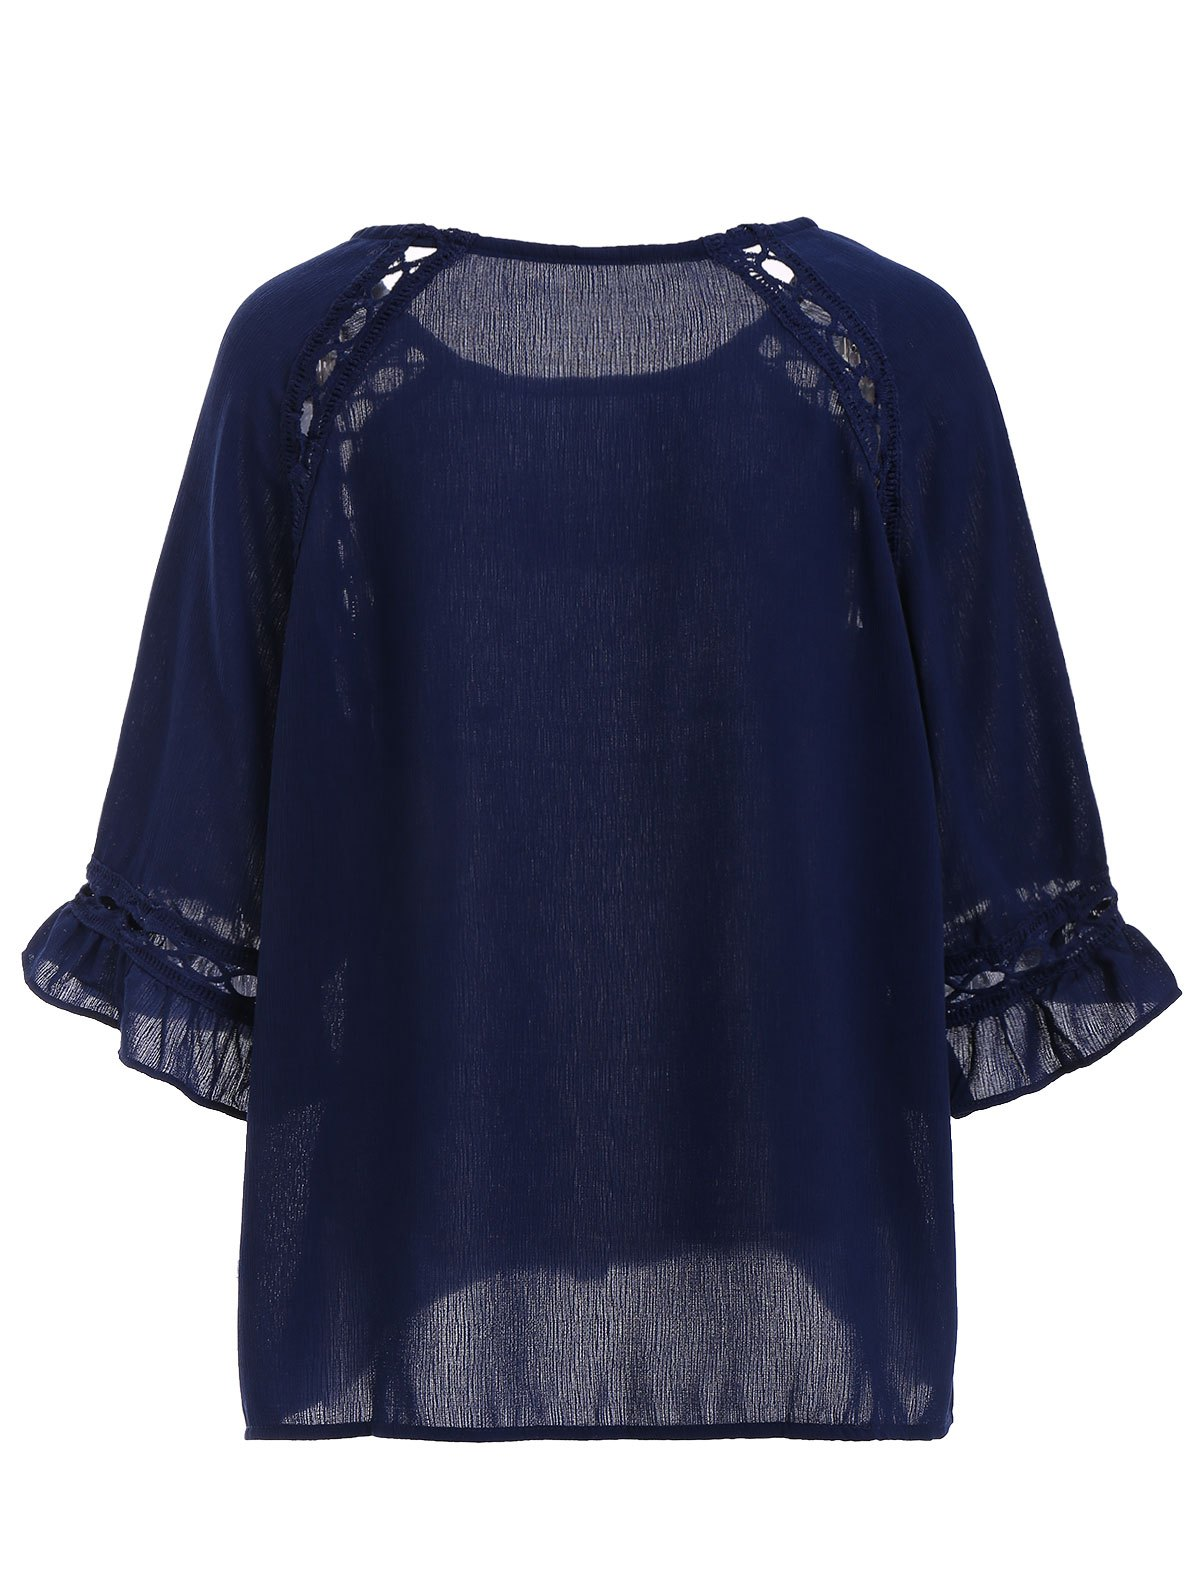 Chic Plus Size Cut Out Blouse For Women - DEEP BLUE 3XL